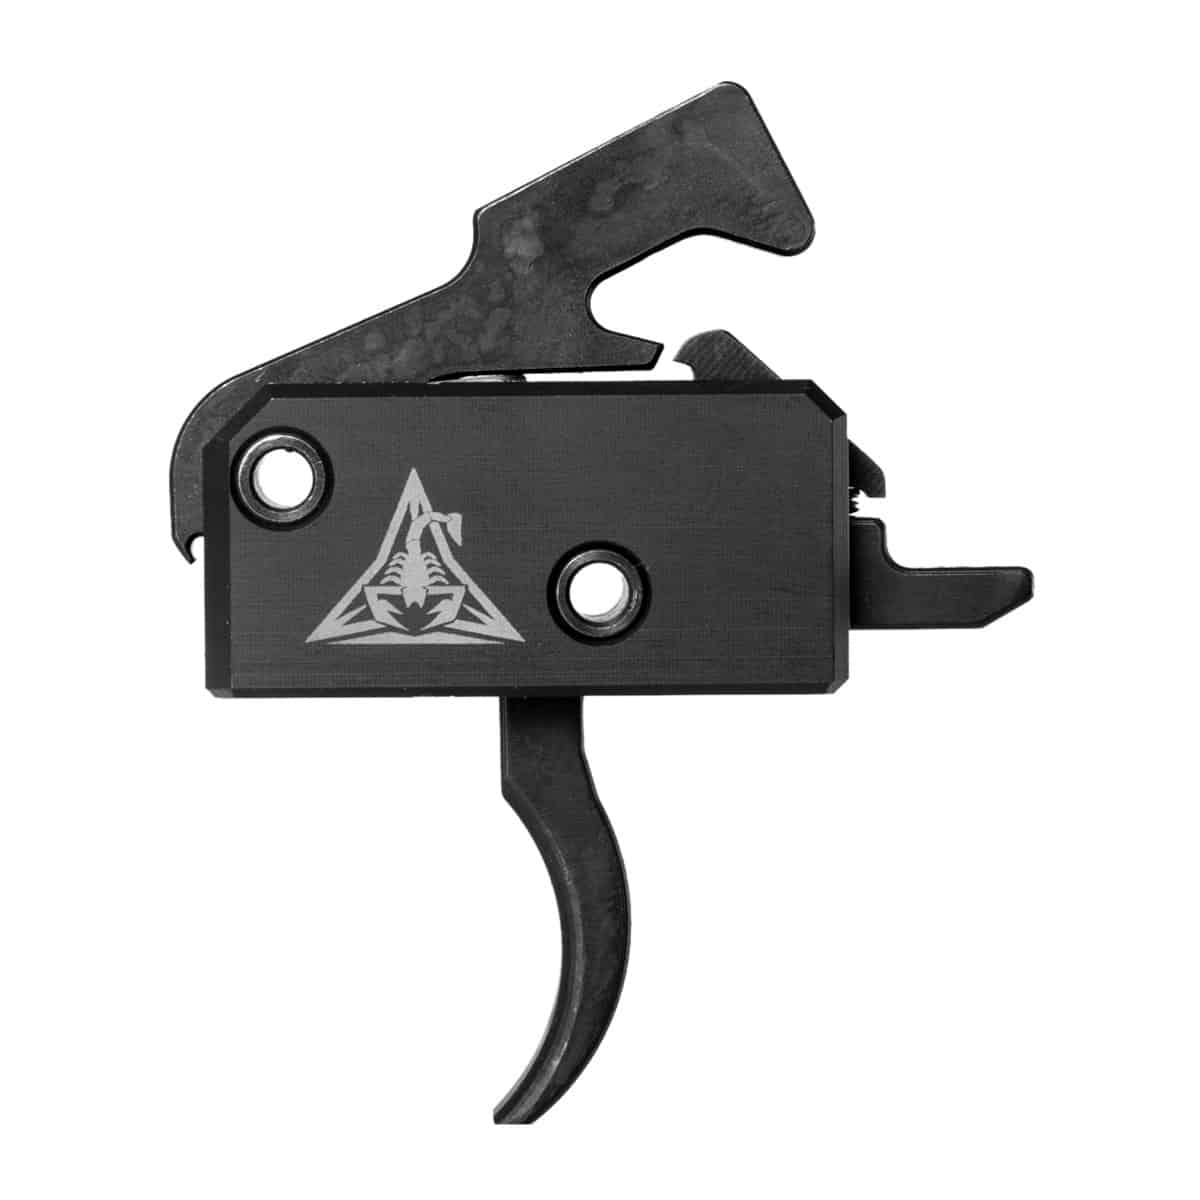 9+ Best AR 15 Trigger Reviews [2019] - Time to Upgrade?